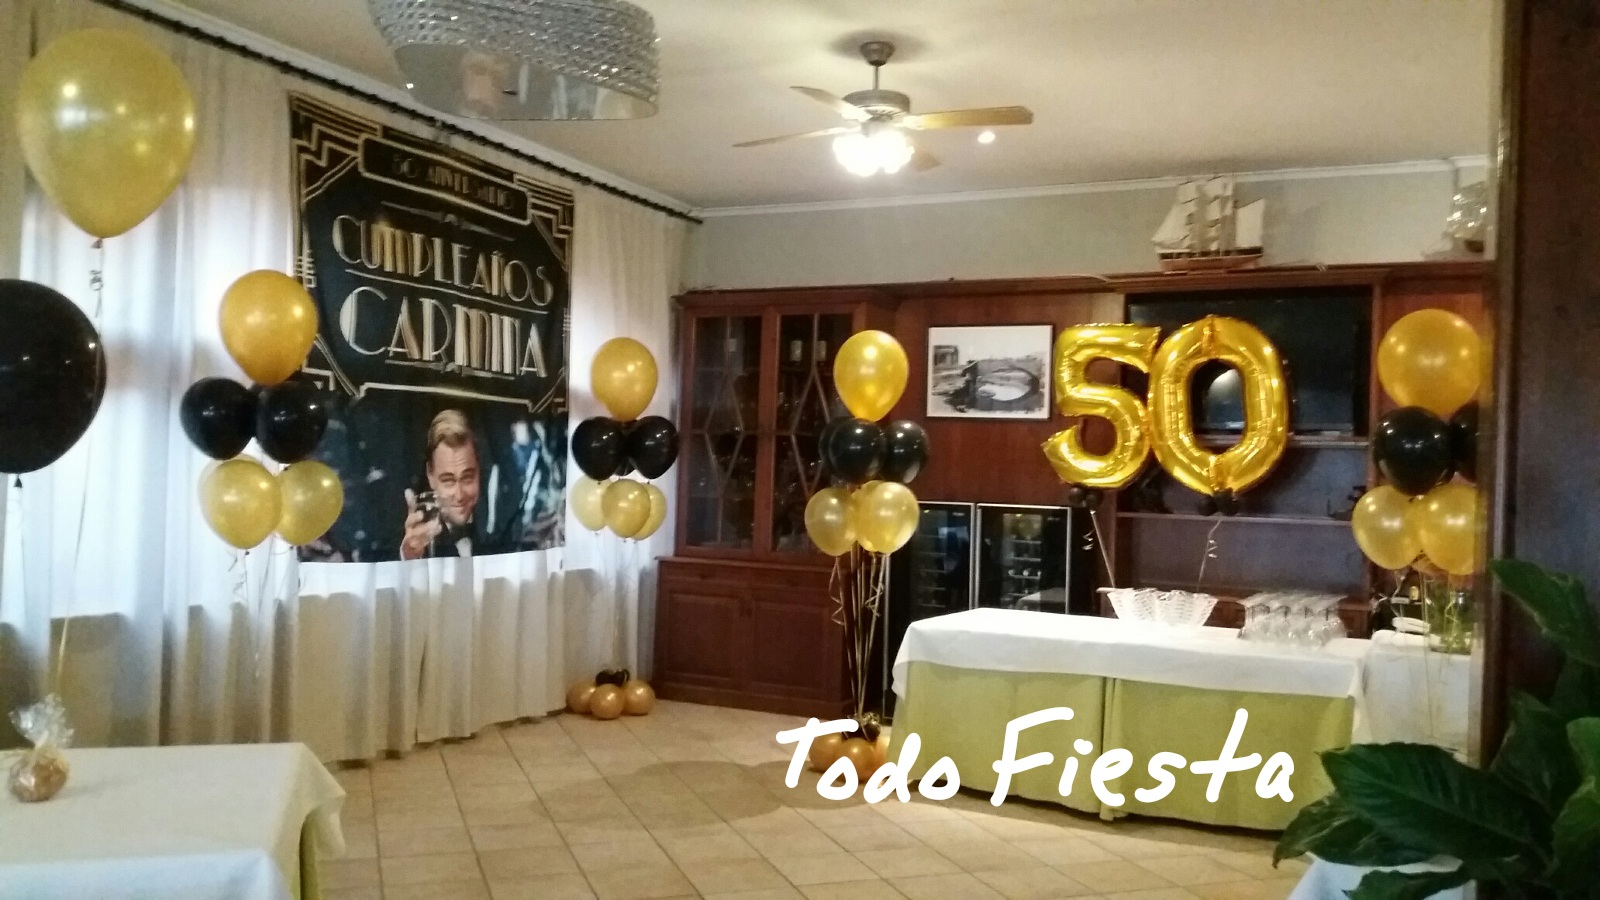 Decoraci n con globos de todo fiesta for Decoracion con globos 50 anos